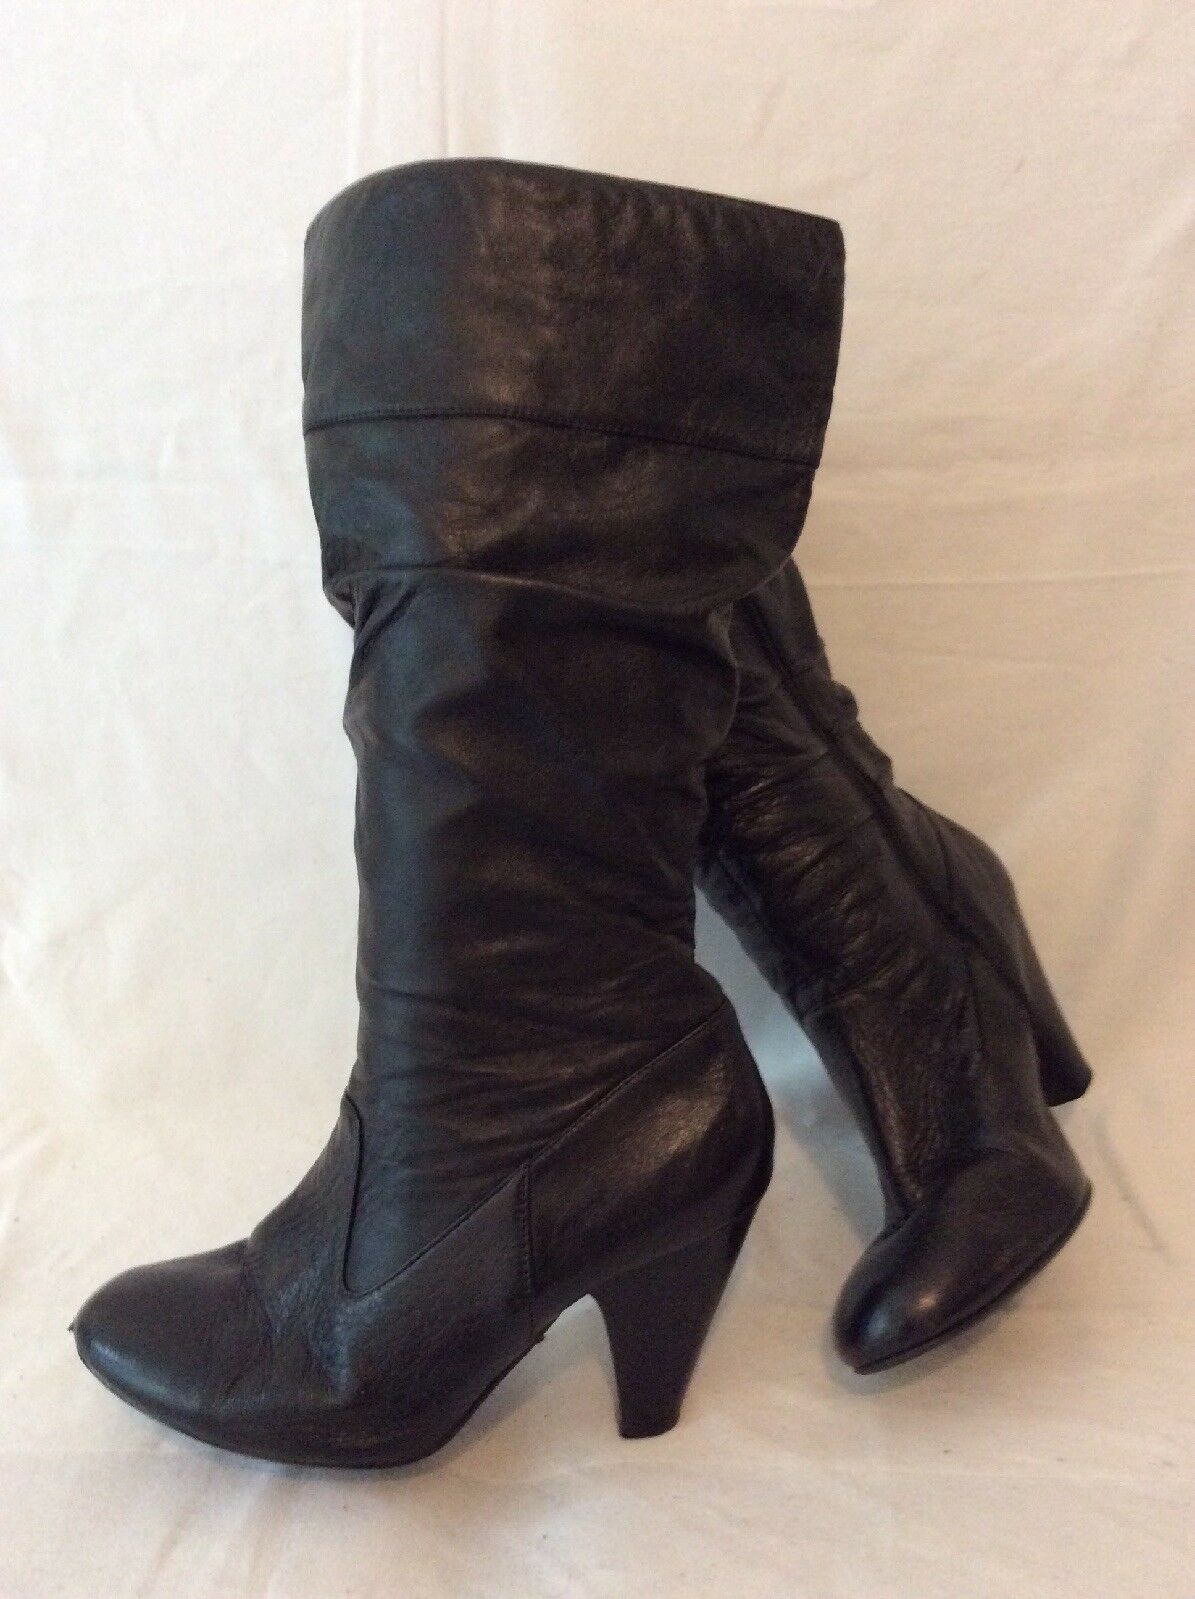 d4ace1a3d4315 E. Mid Calf Leather Boots Size 7W Black ntwfll1605-Women's Boots ...